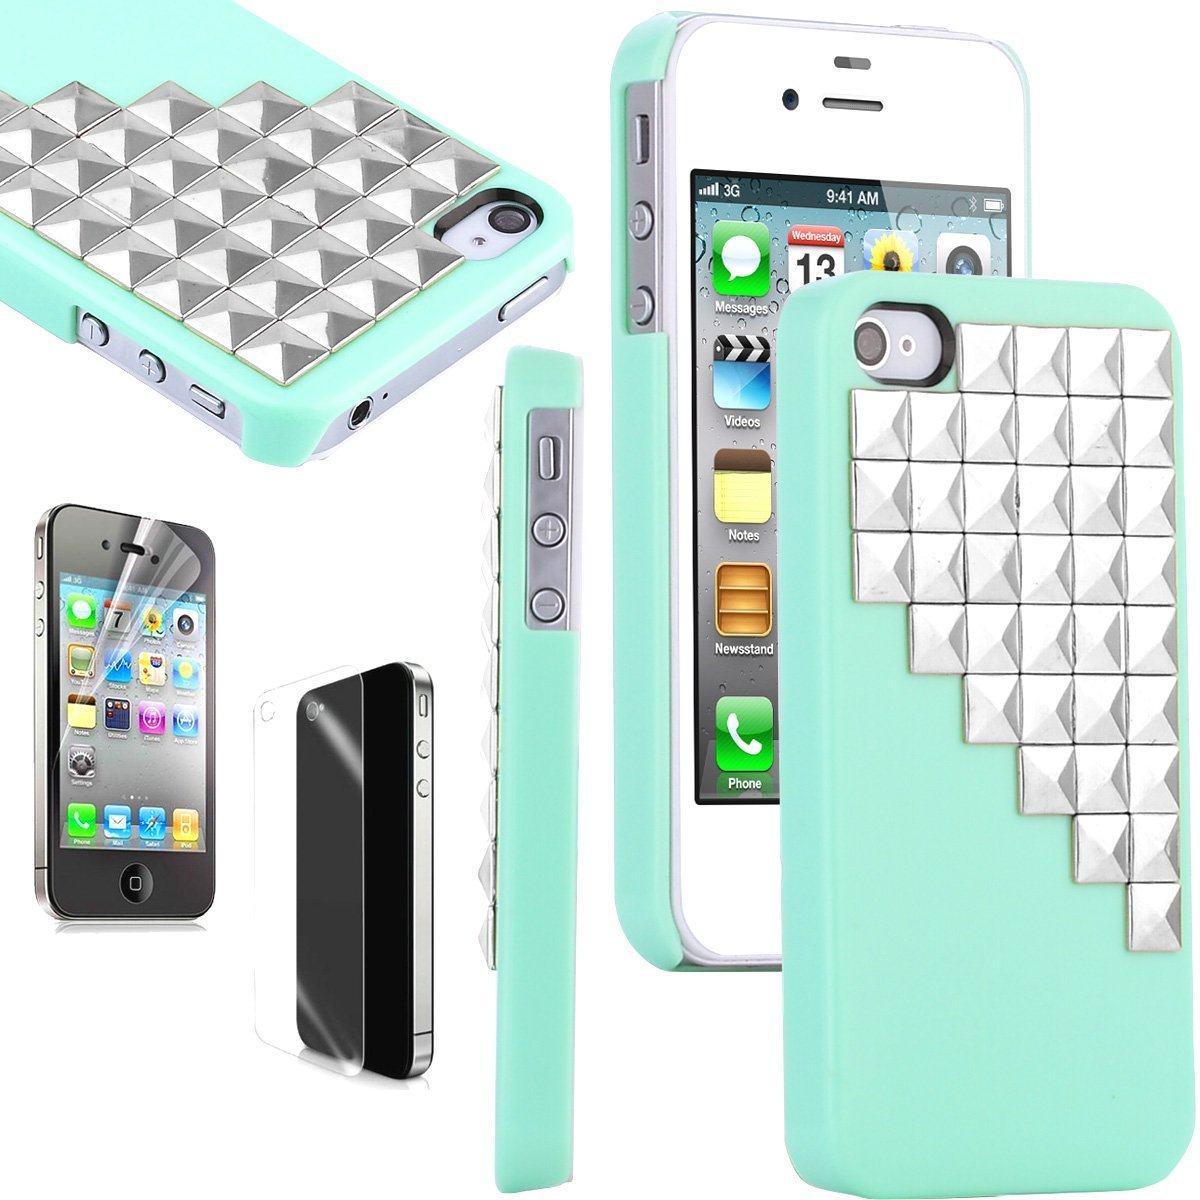 3 Units ULAK 3D Bling Cute Pyramid Punk Studs Hard Back Case Cover Skin For iPhone 4/iPhone 4S (Silver Rivet+Green)(China (Mainland))